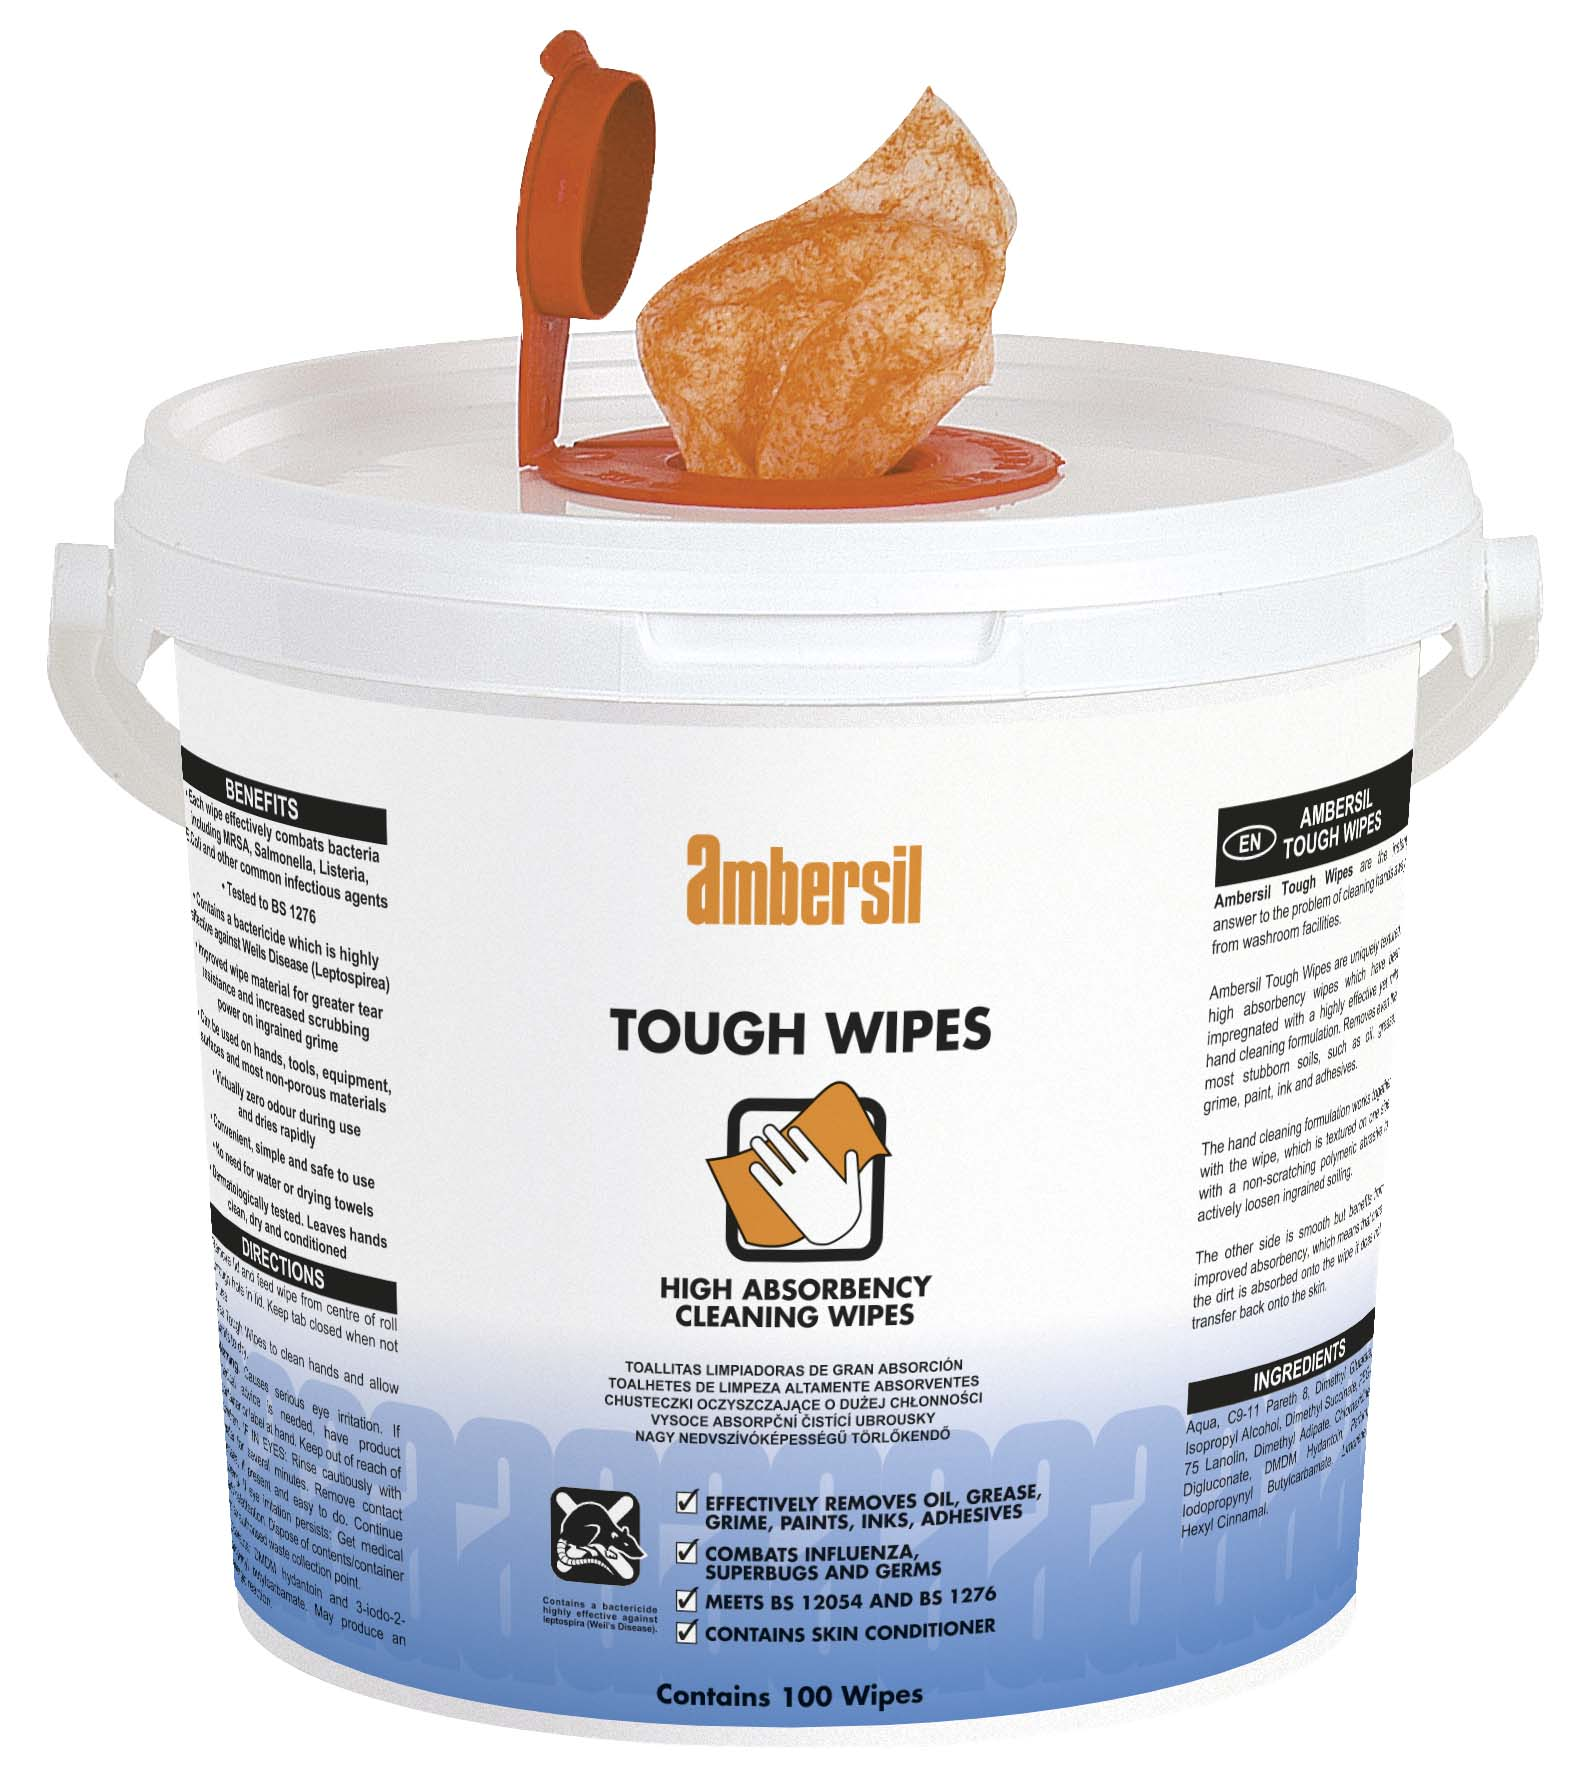 AMBERSIL - TOUGH WIPES Tough Wipes (Pack of 100 Wipes) - Part number AMB-30767-100